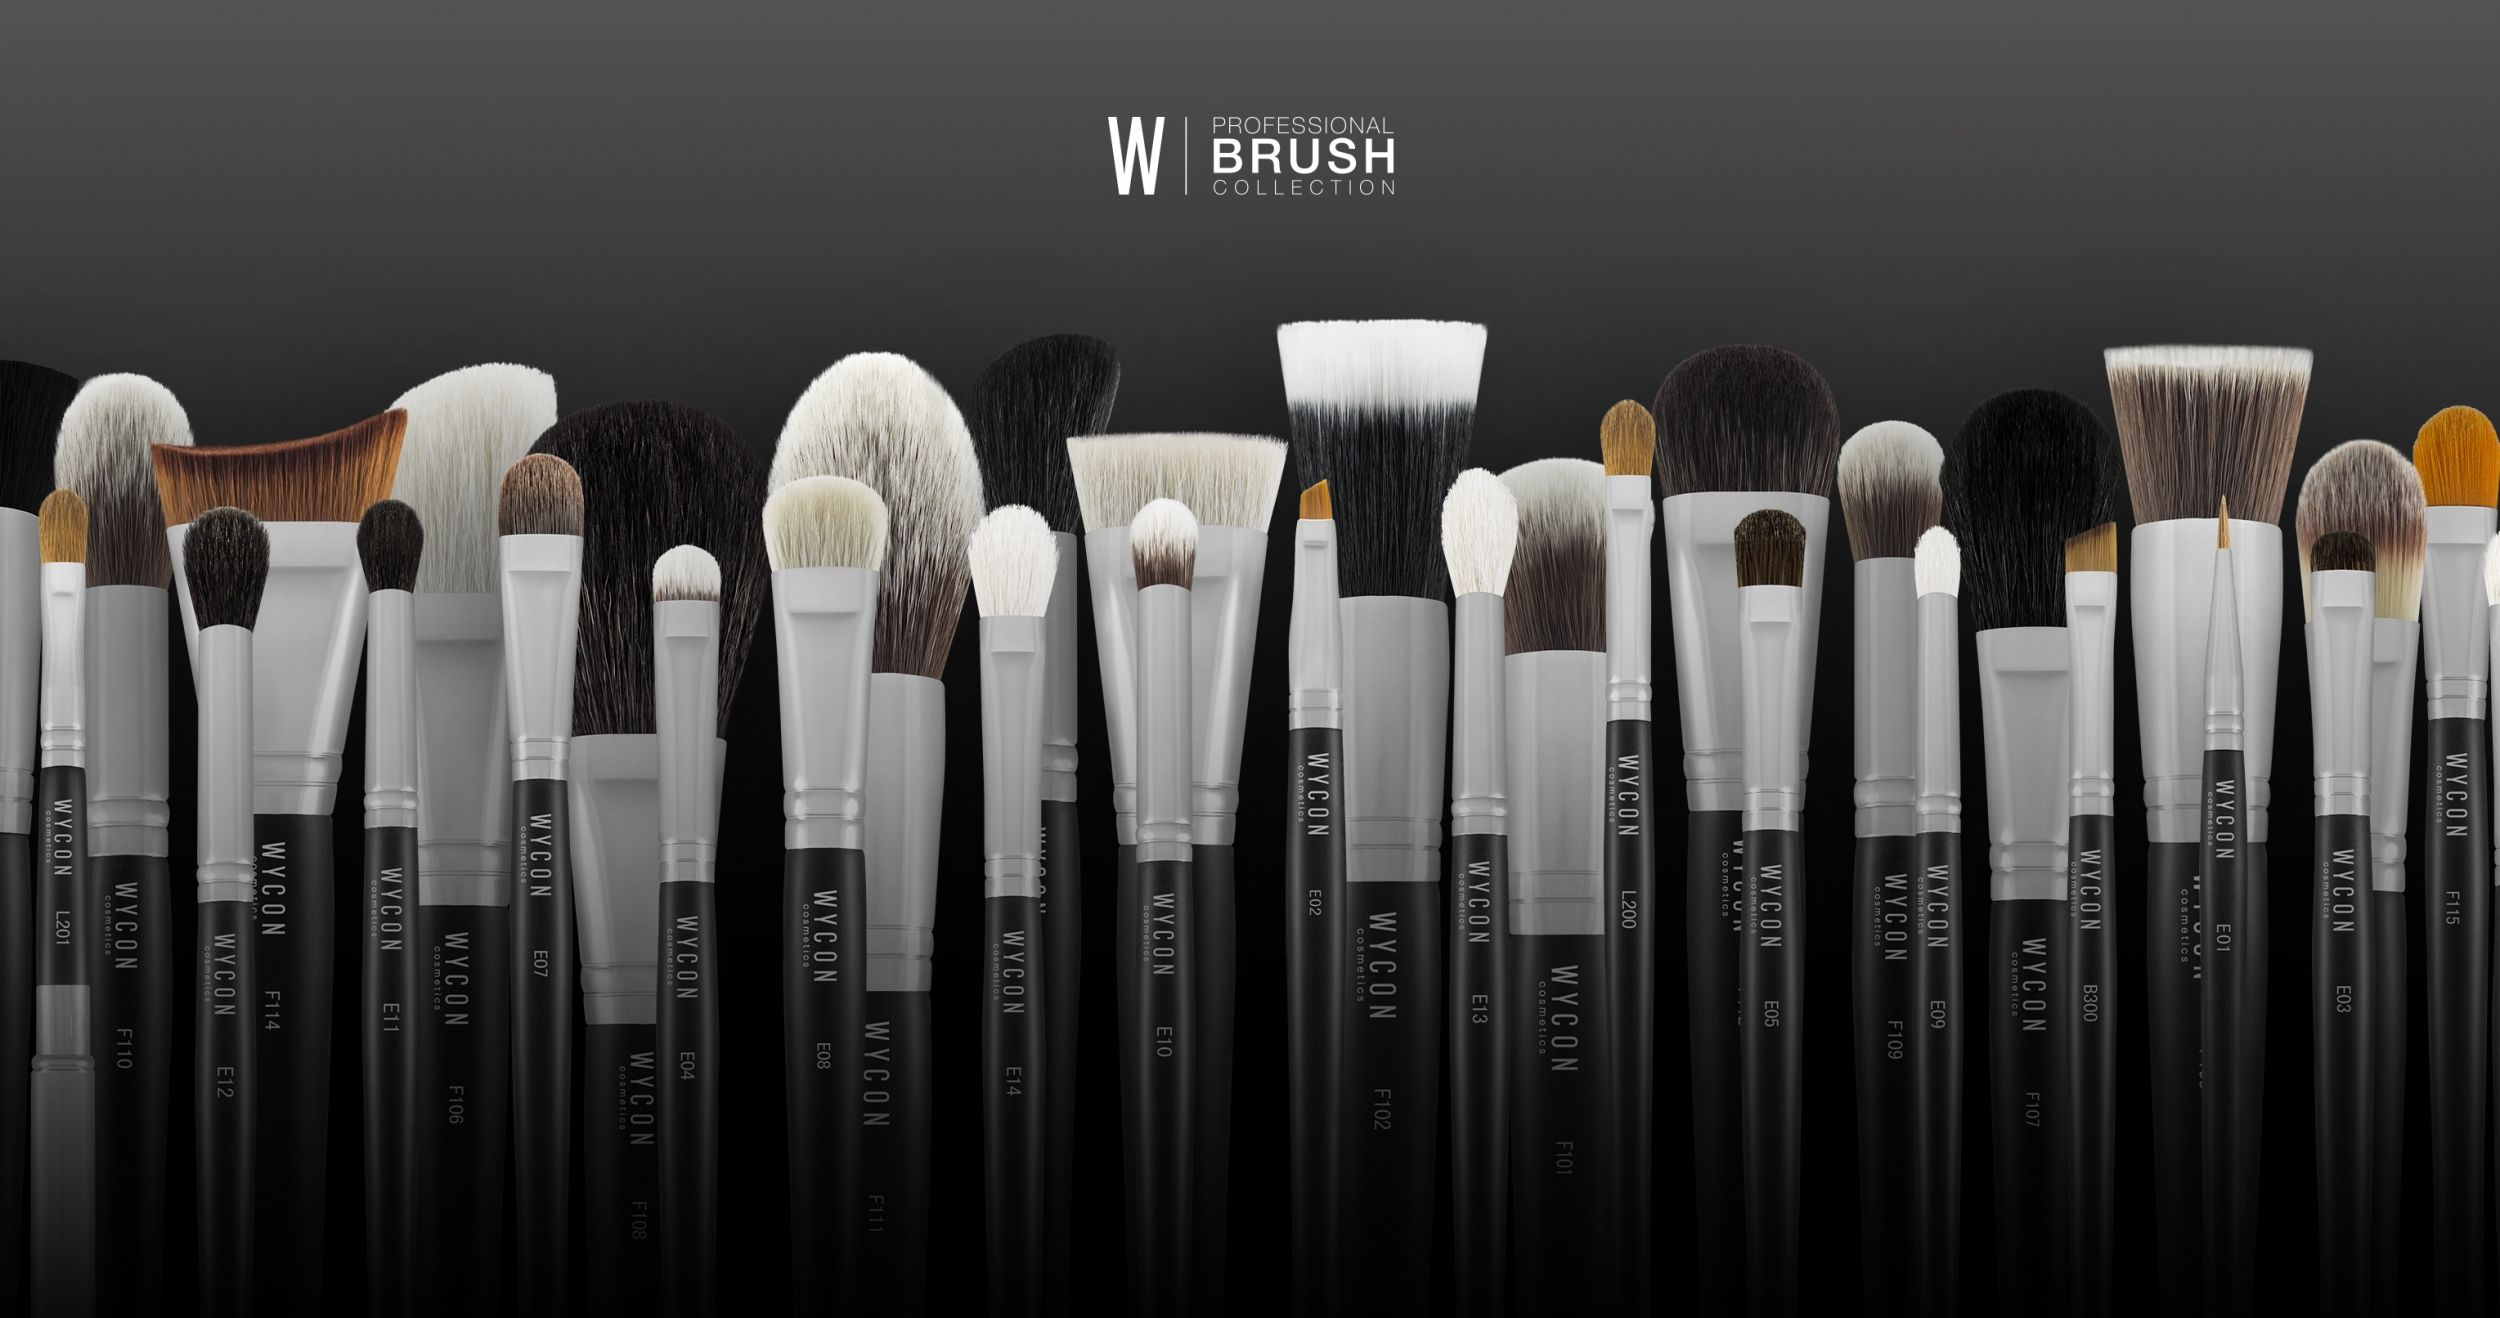 PROFESSIONAL BRUSH COLLECTION